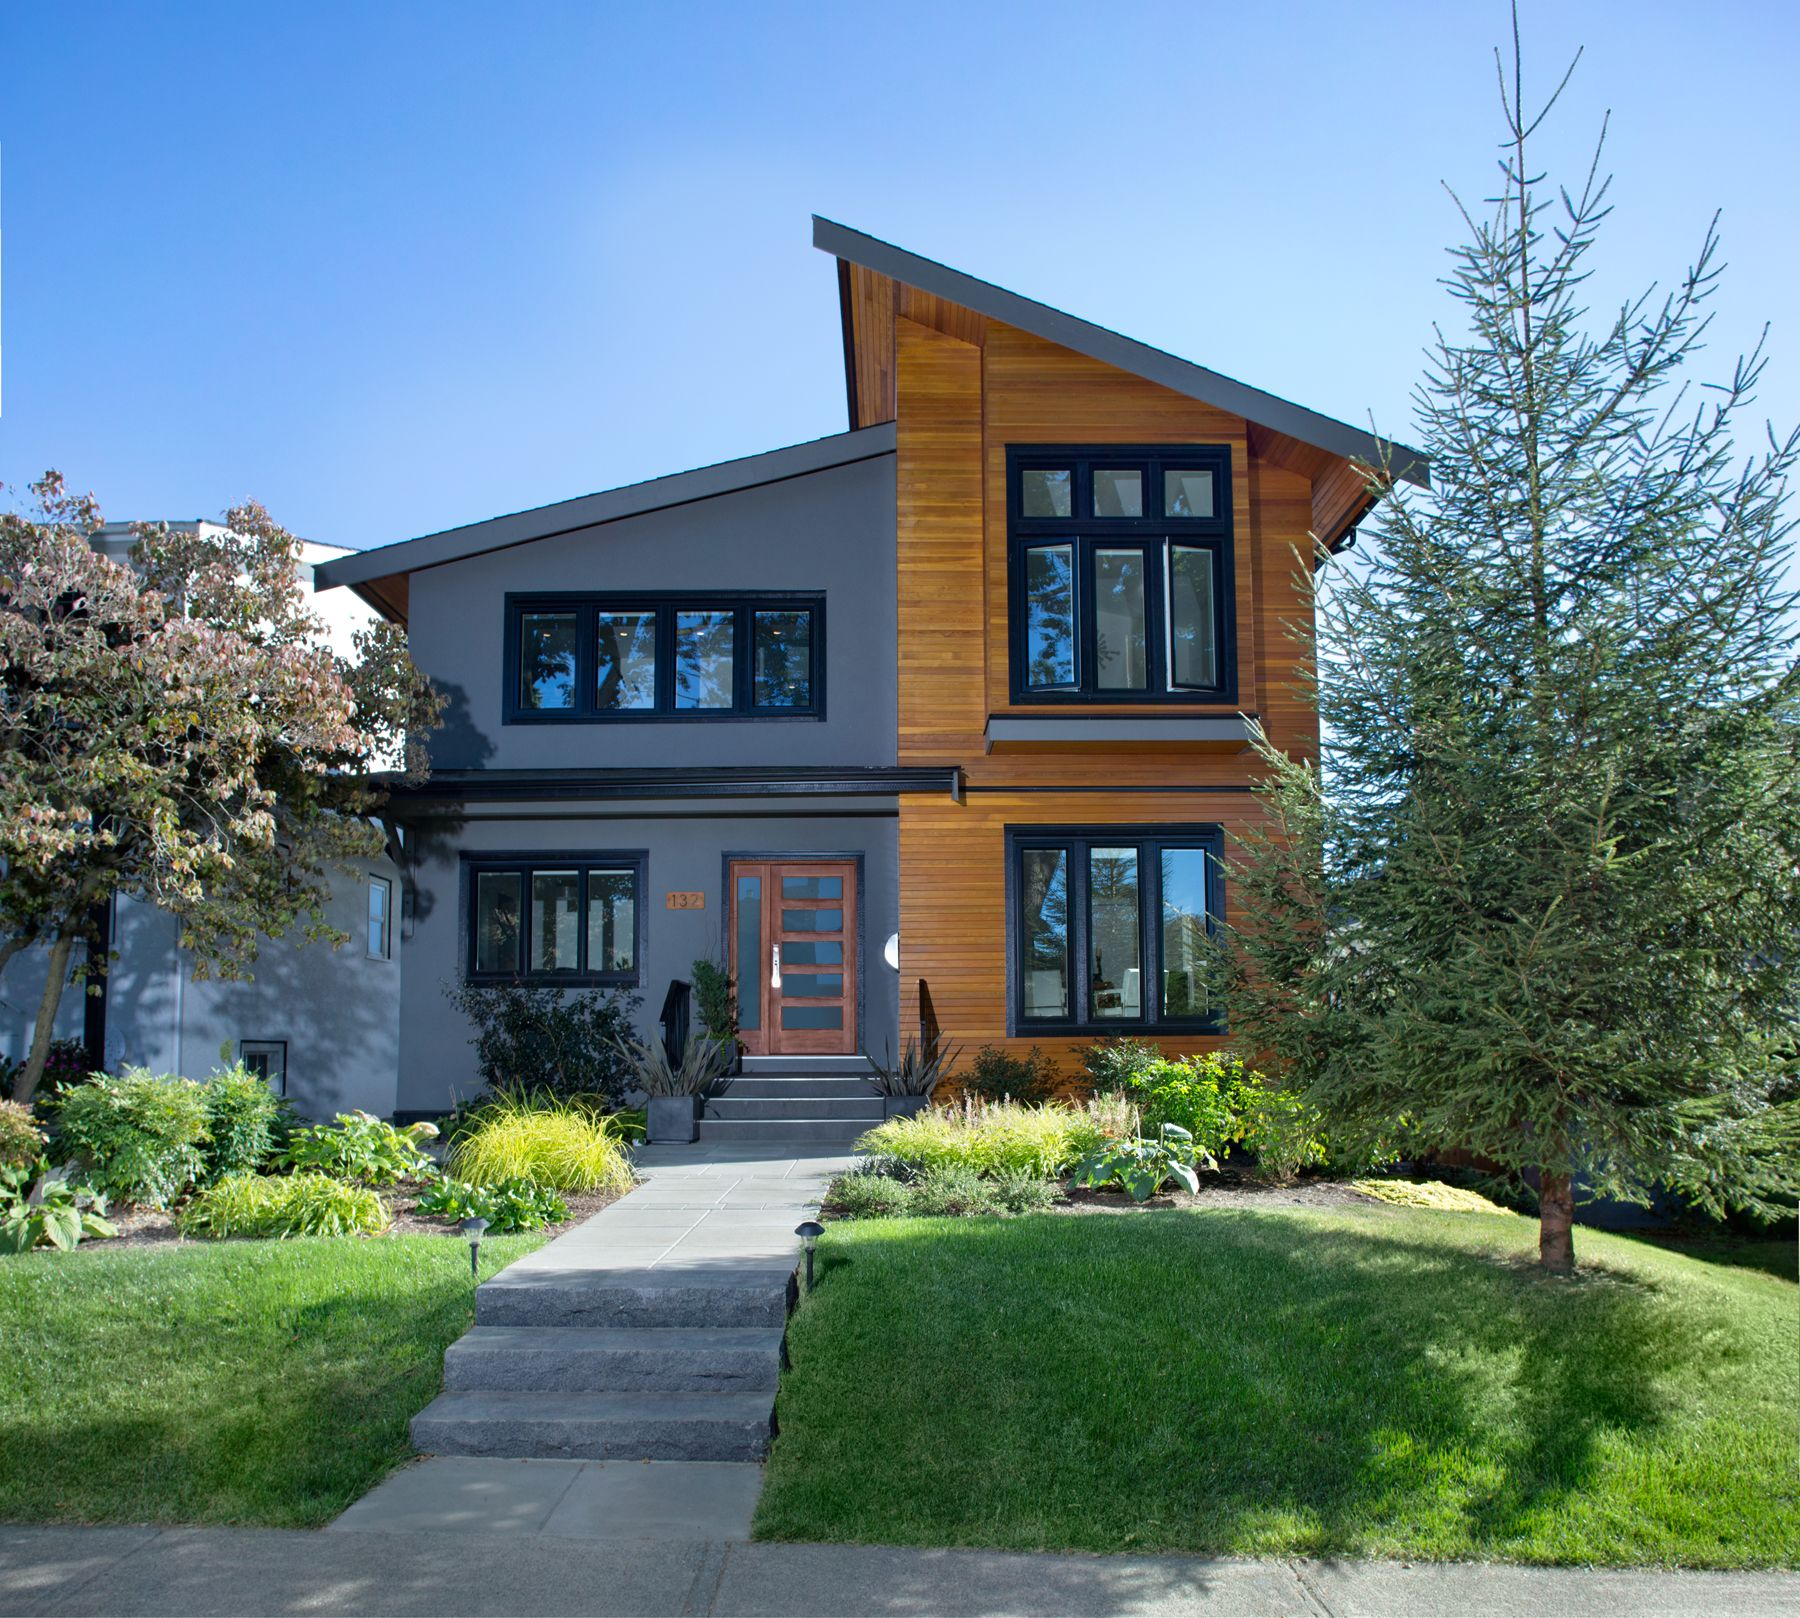 Vancouver, BC Home: Total Overhaul